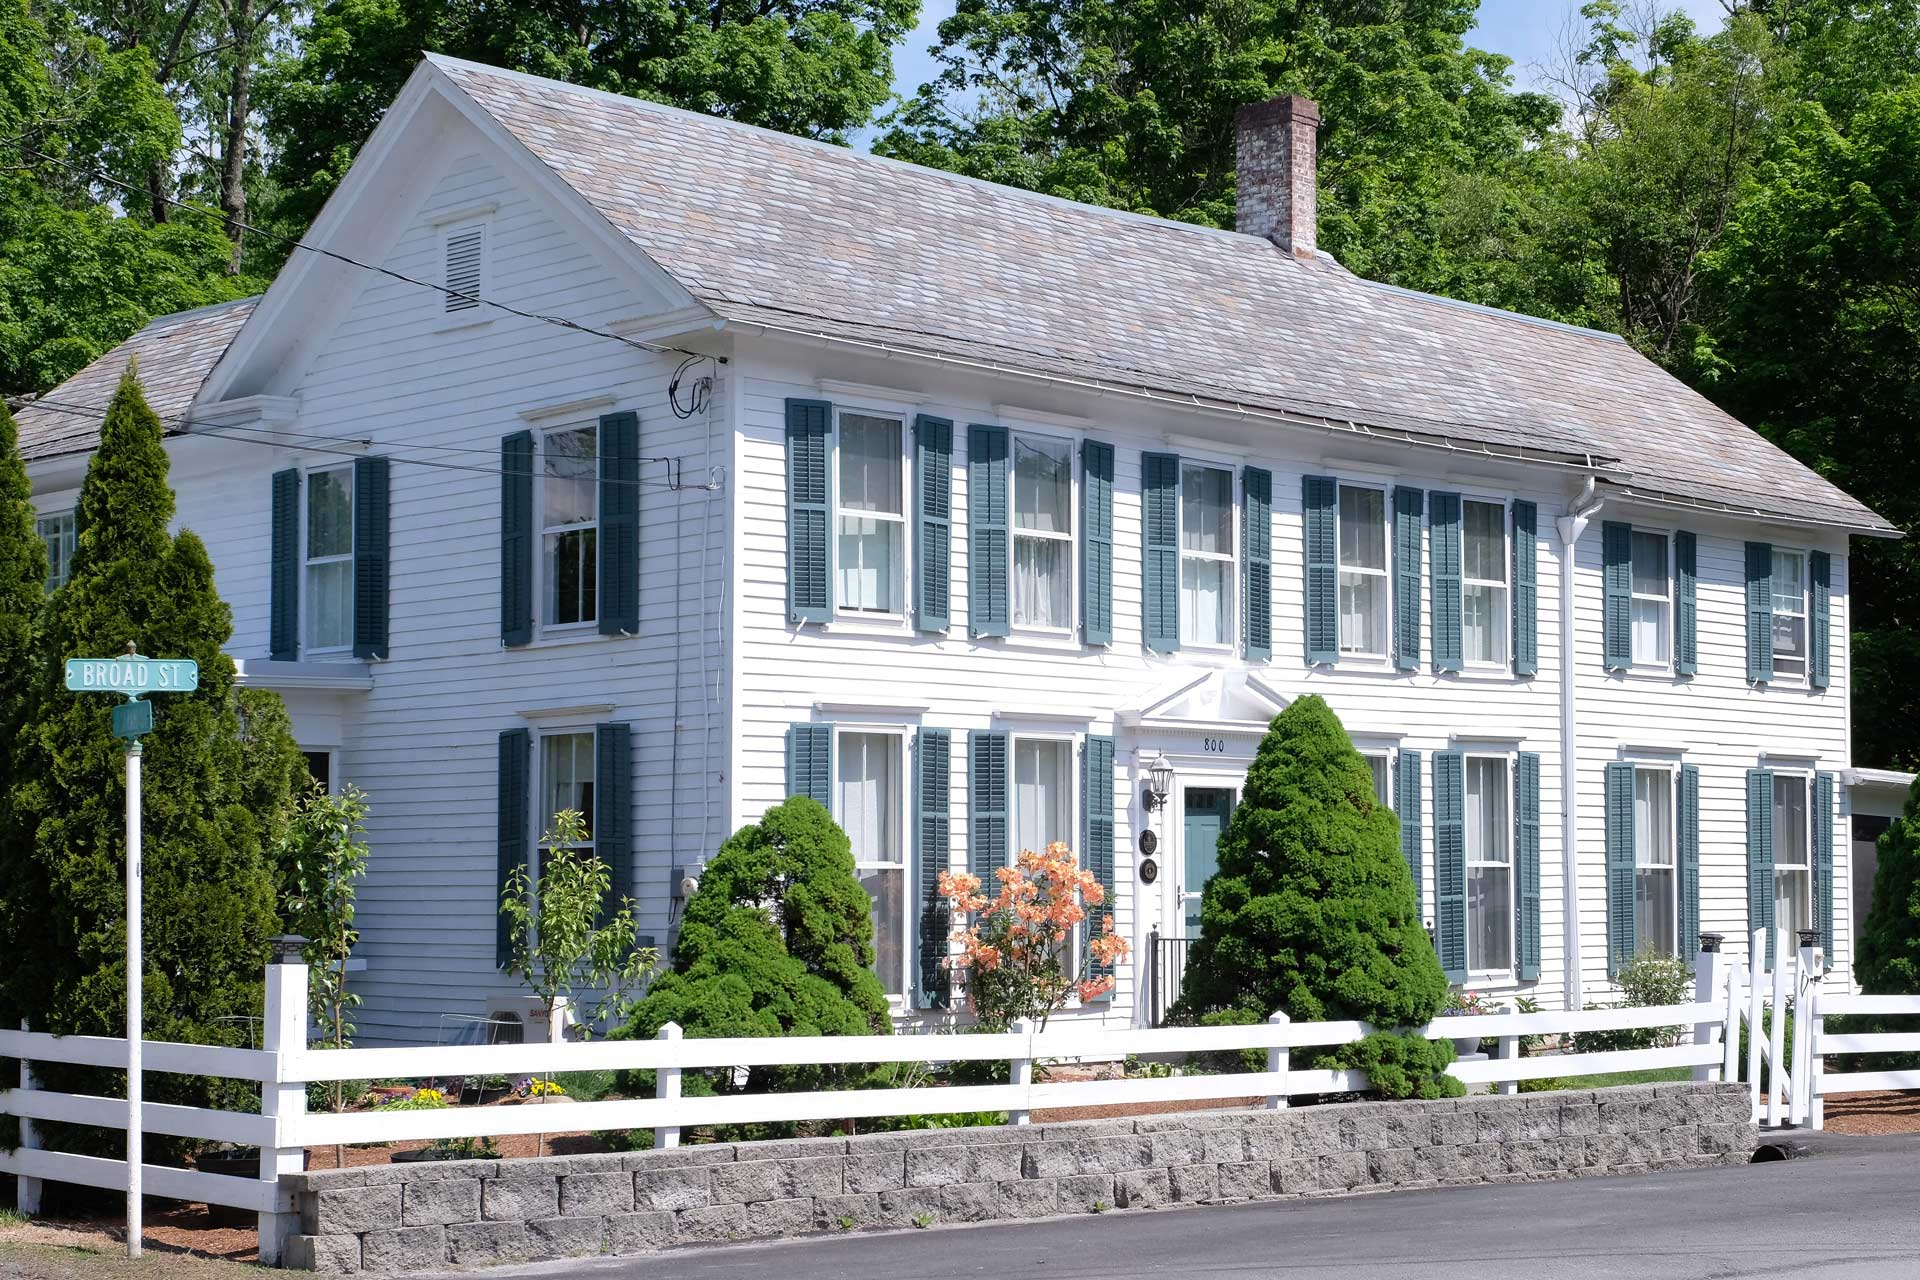 large old white house with green trim and stone and white picket fence